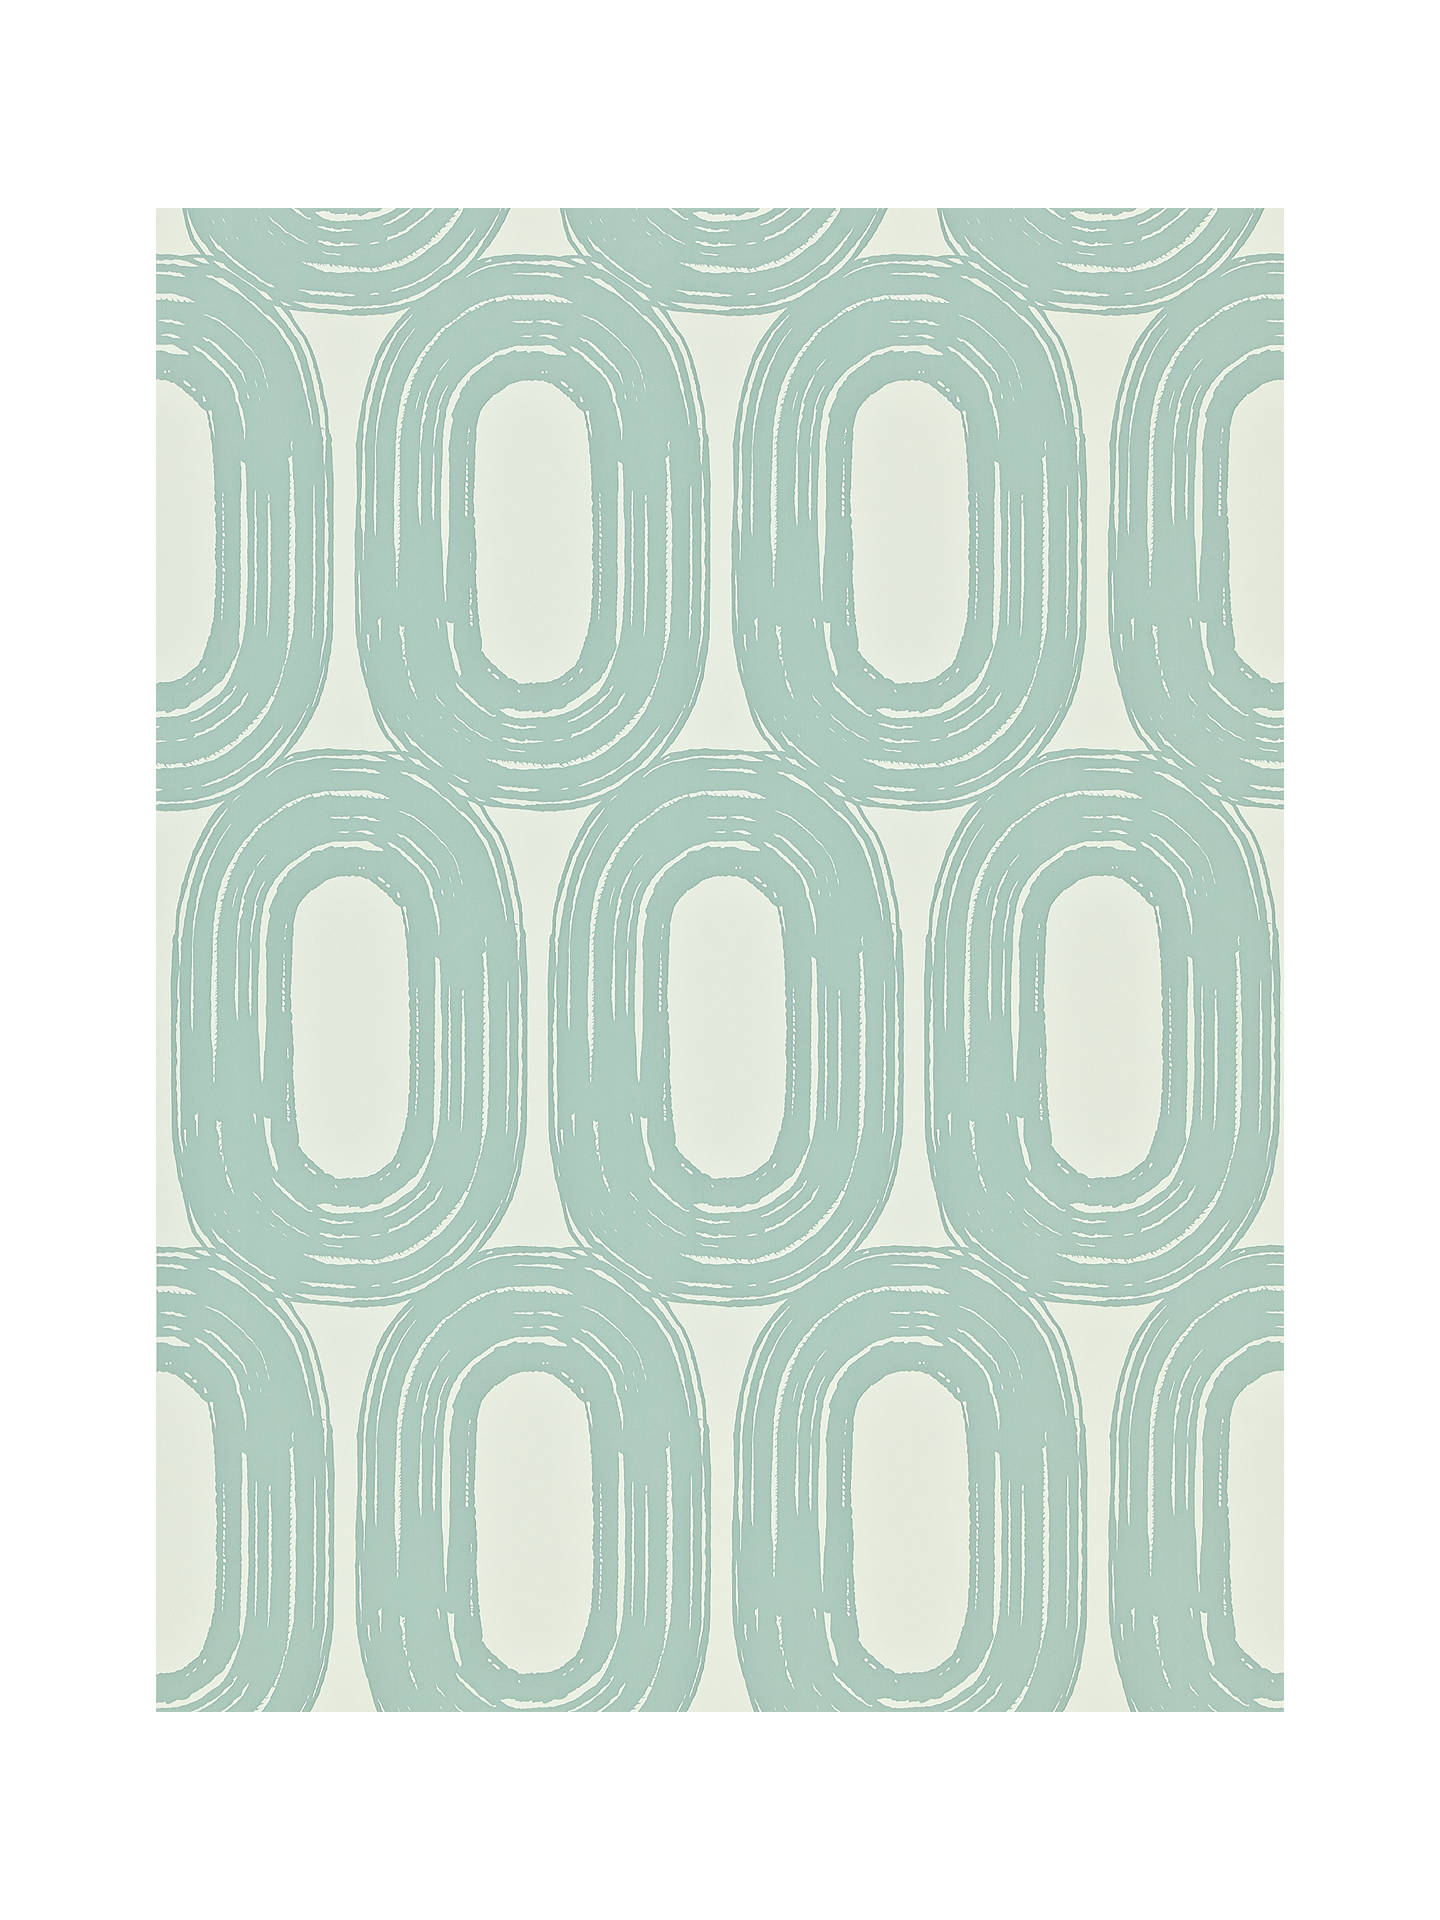 Buy Scion Loop Paste the Wall Wallpaper, Duck Egg, 110452 Online at johnlewis.com